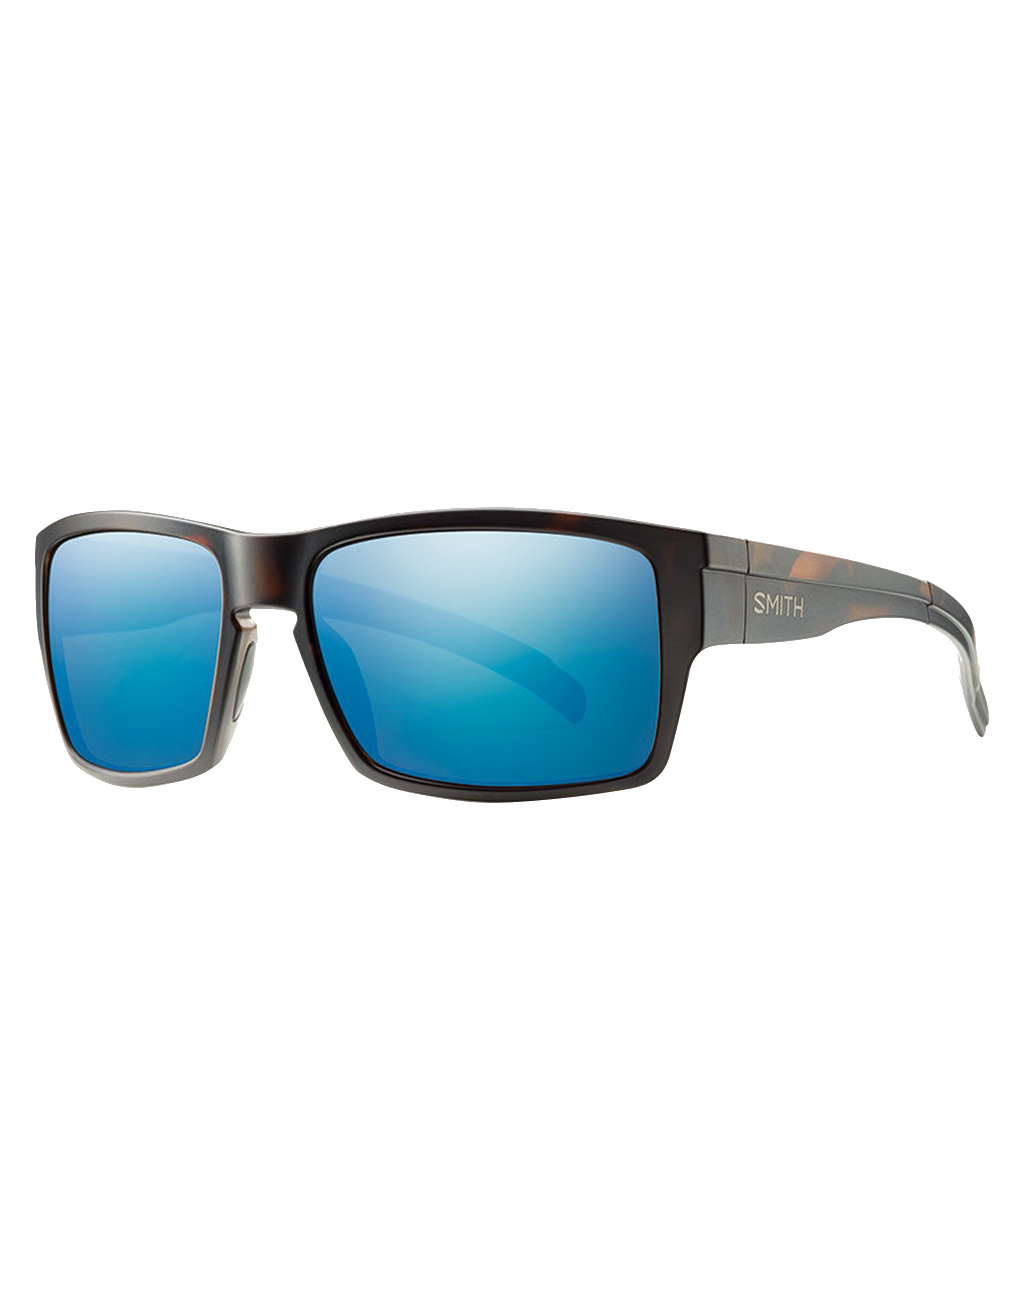 Smith Optics Outlier XL SunglassesTortoise_master_image